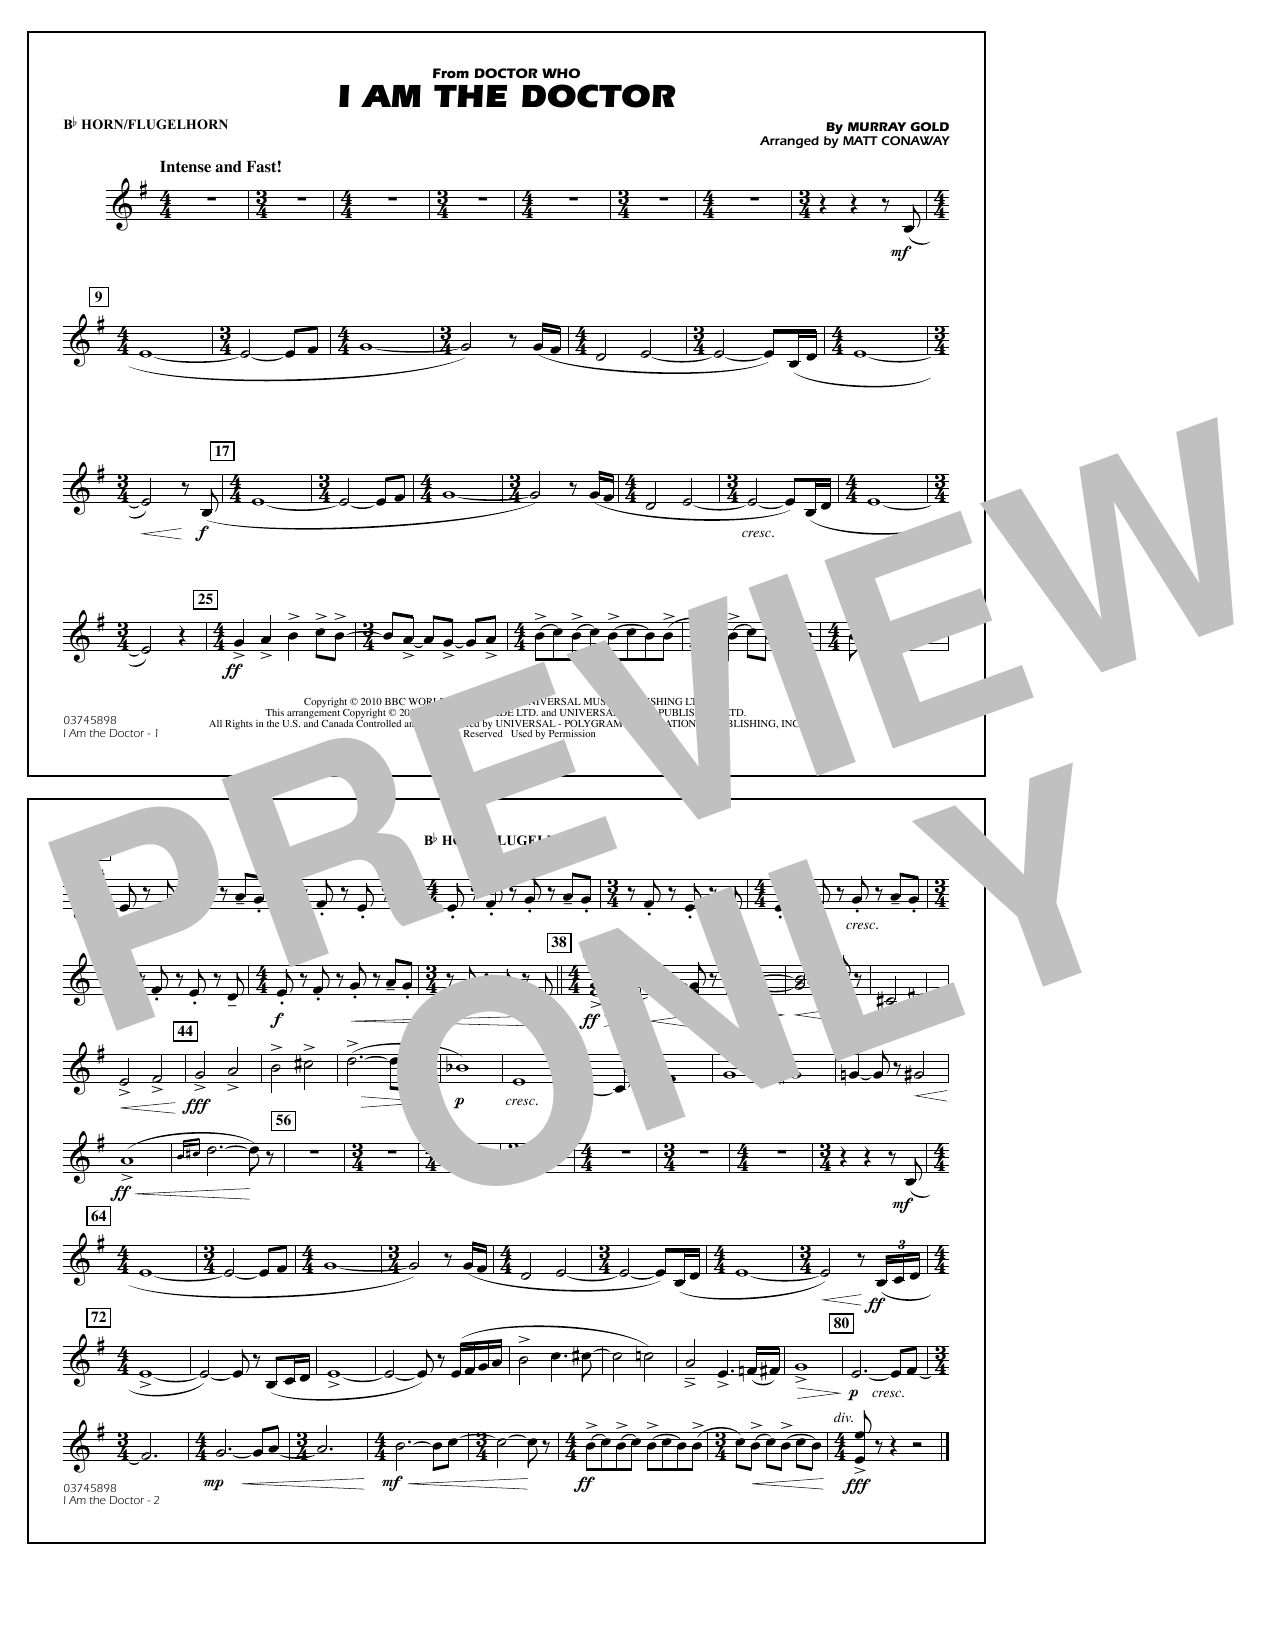 Matt Conaway I Am the Doctor (from Doctor Who) - Bb Horn/Flugelhorn sheet music notes and chords